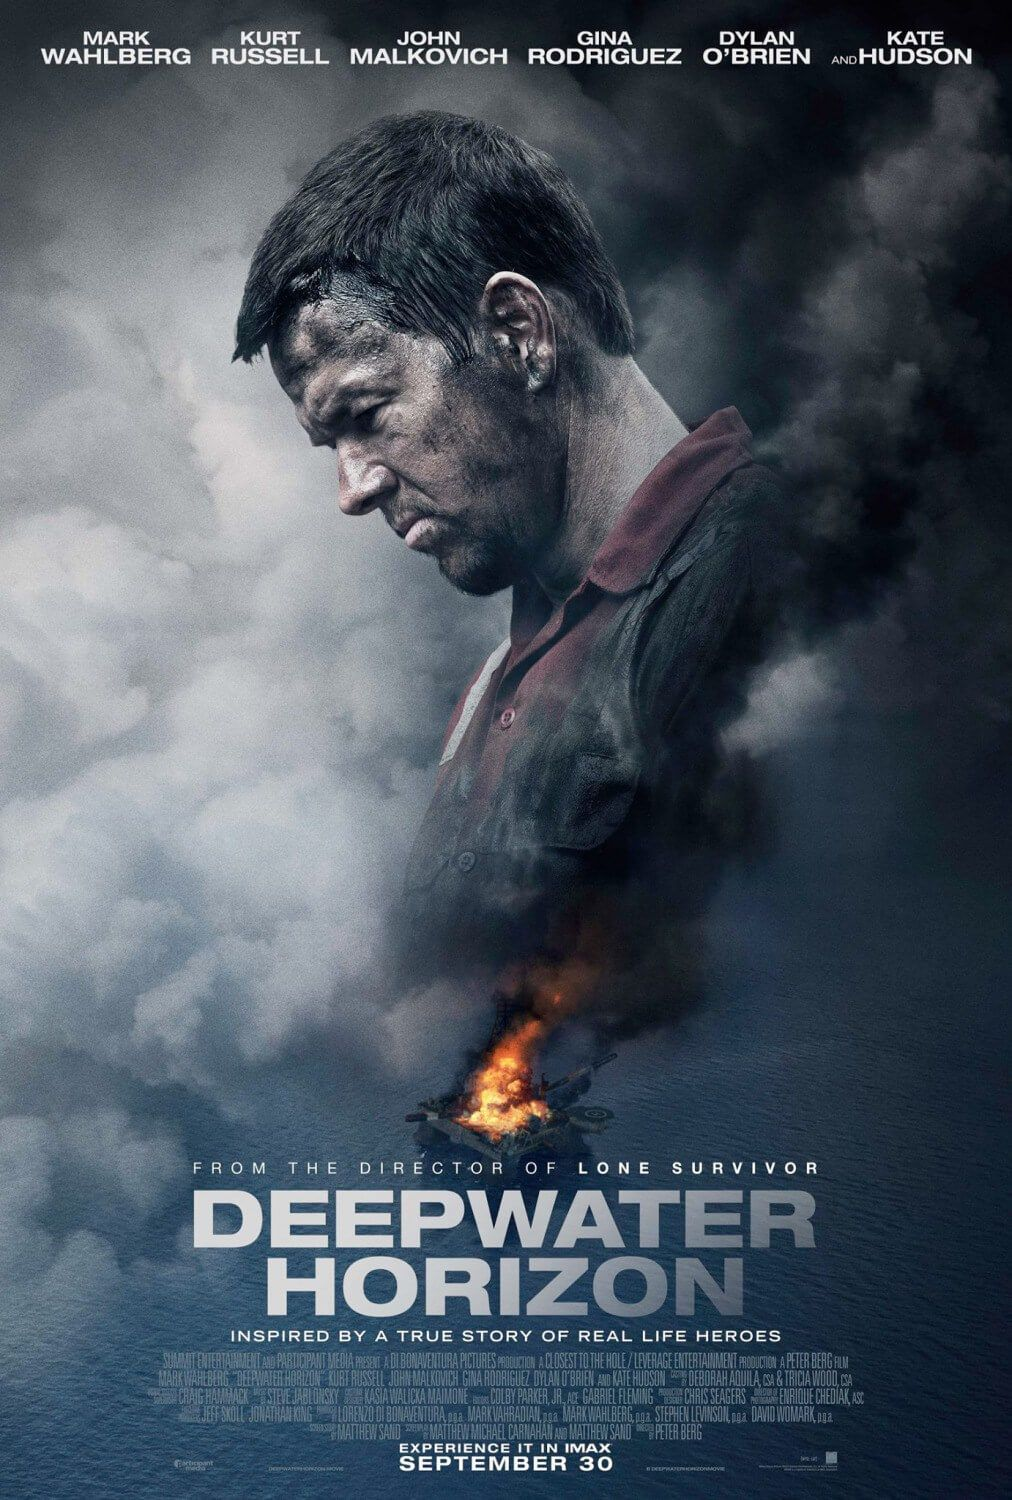 Cartazes Do Filme Deepwater Horizon Com Filmes Legendados